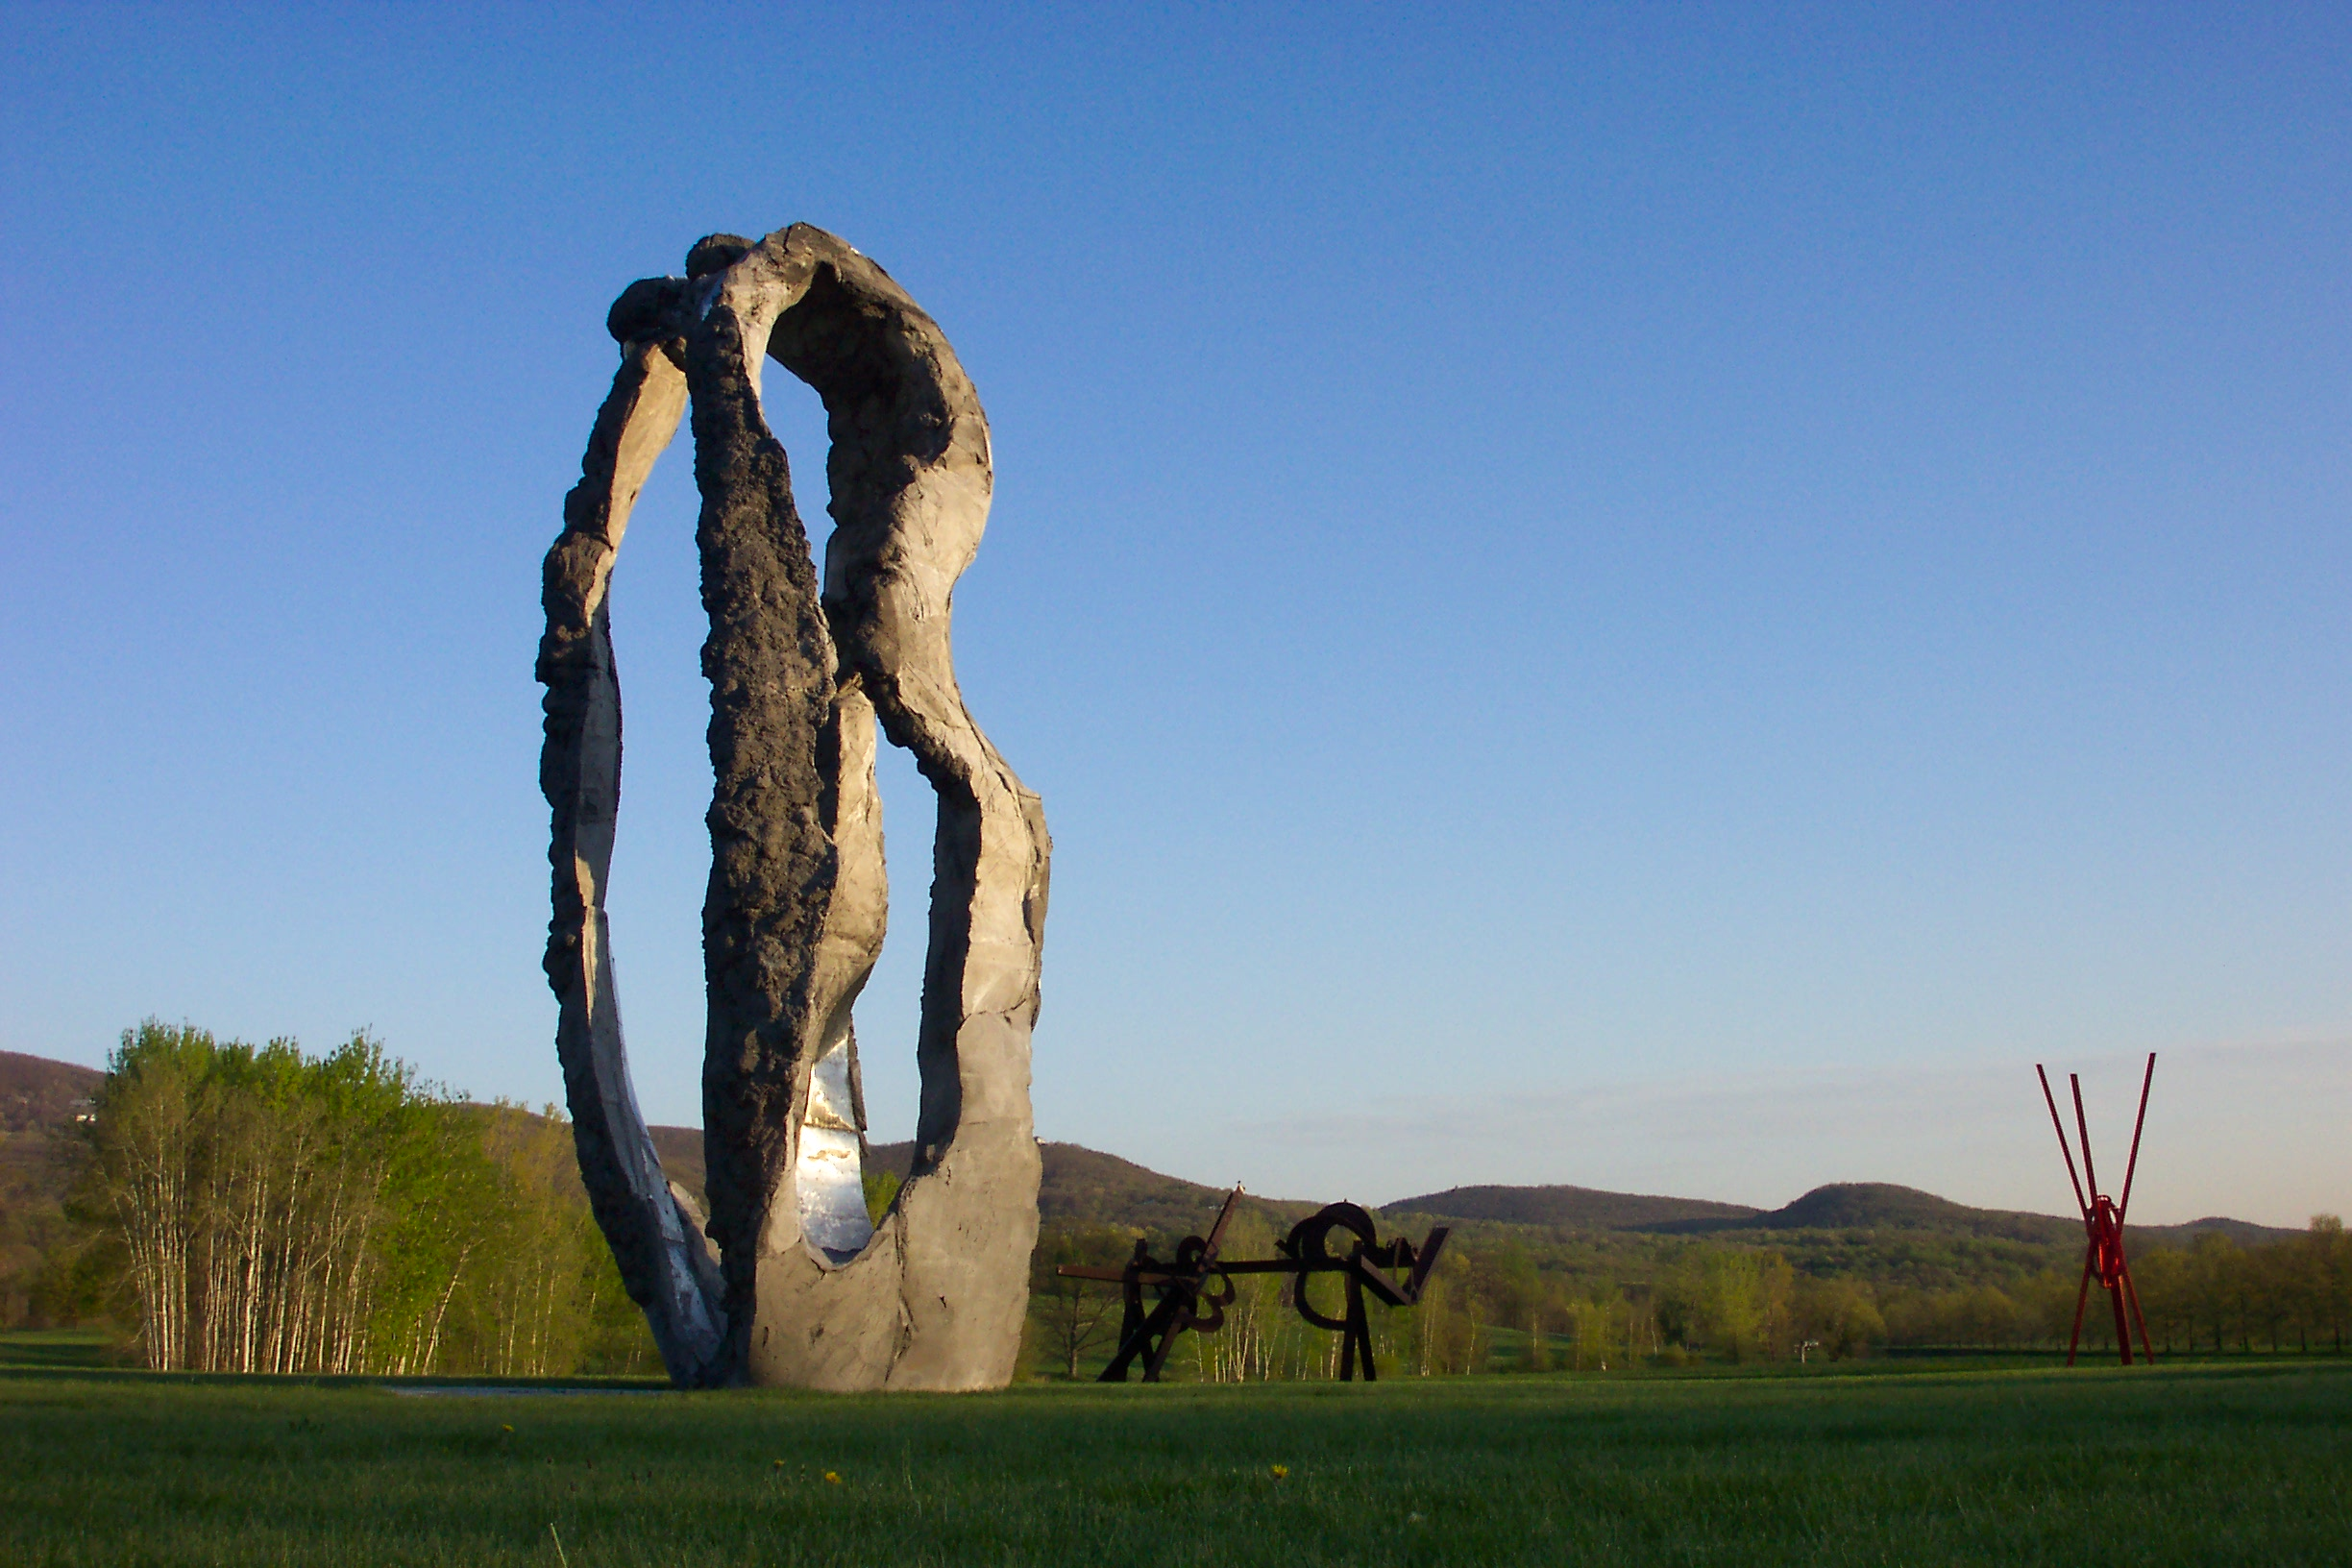 Dancing with Torsten, Storm King Art Center, NY, USA